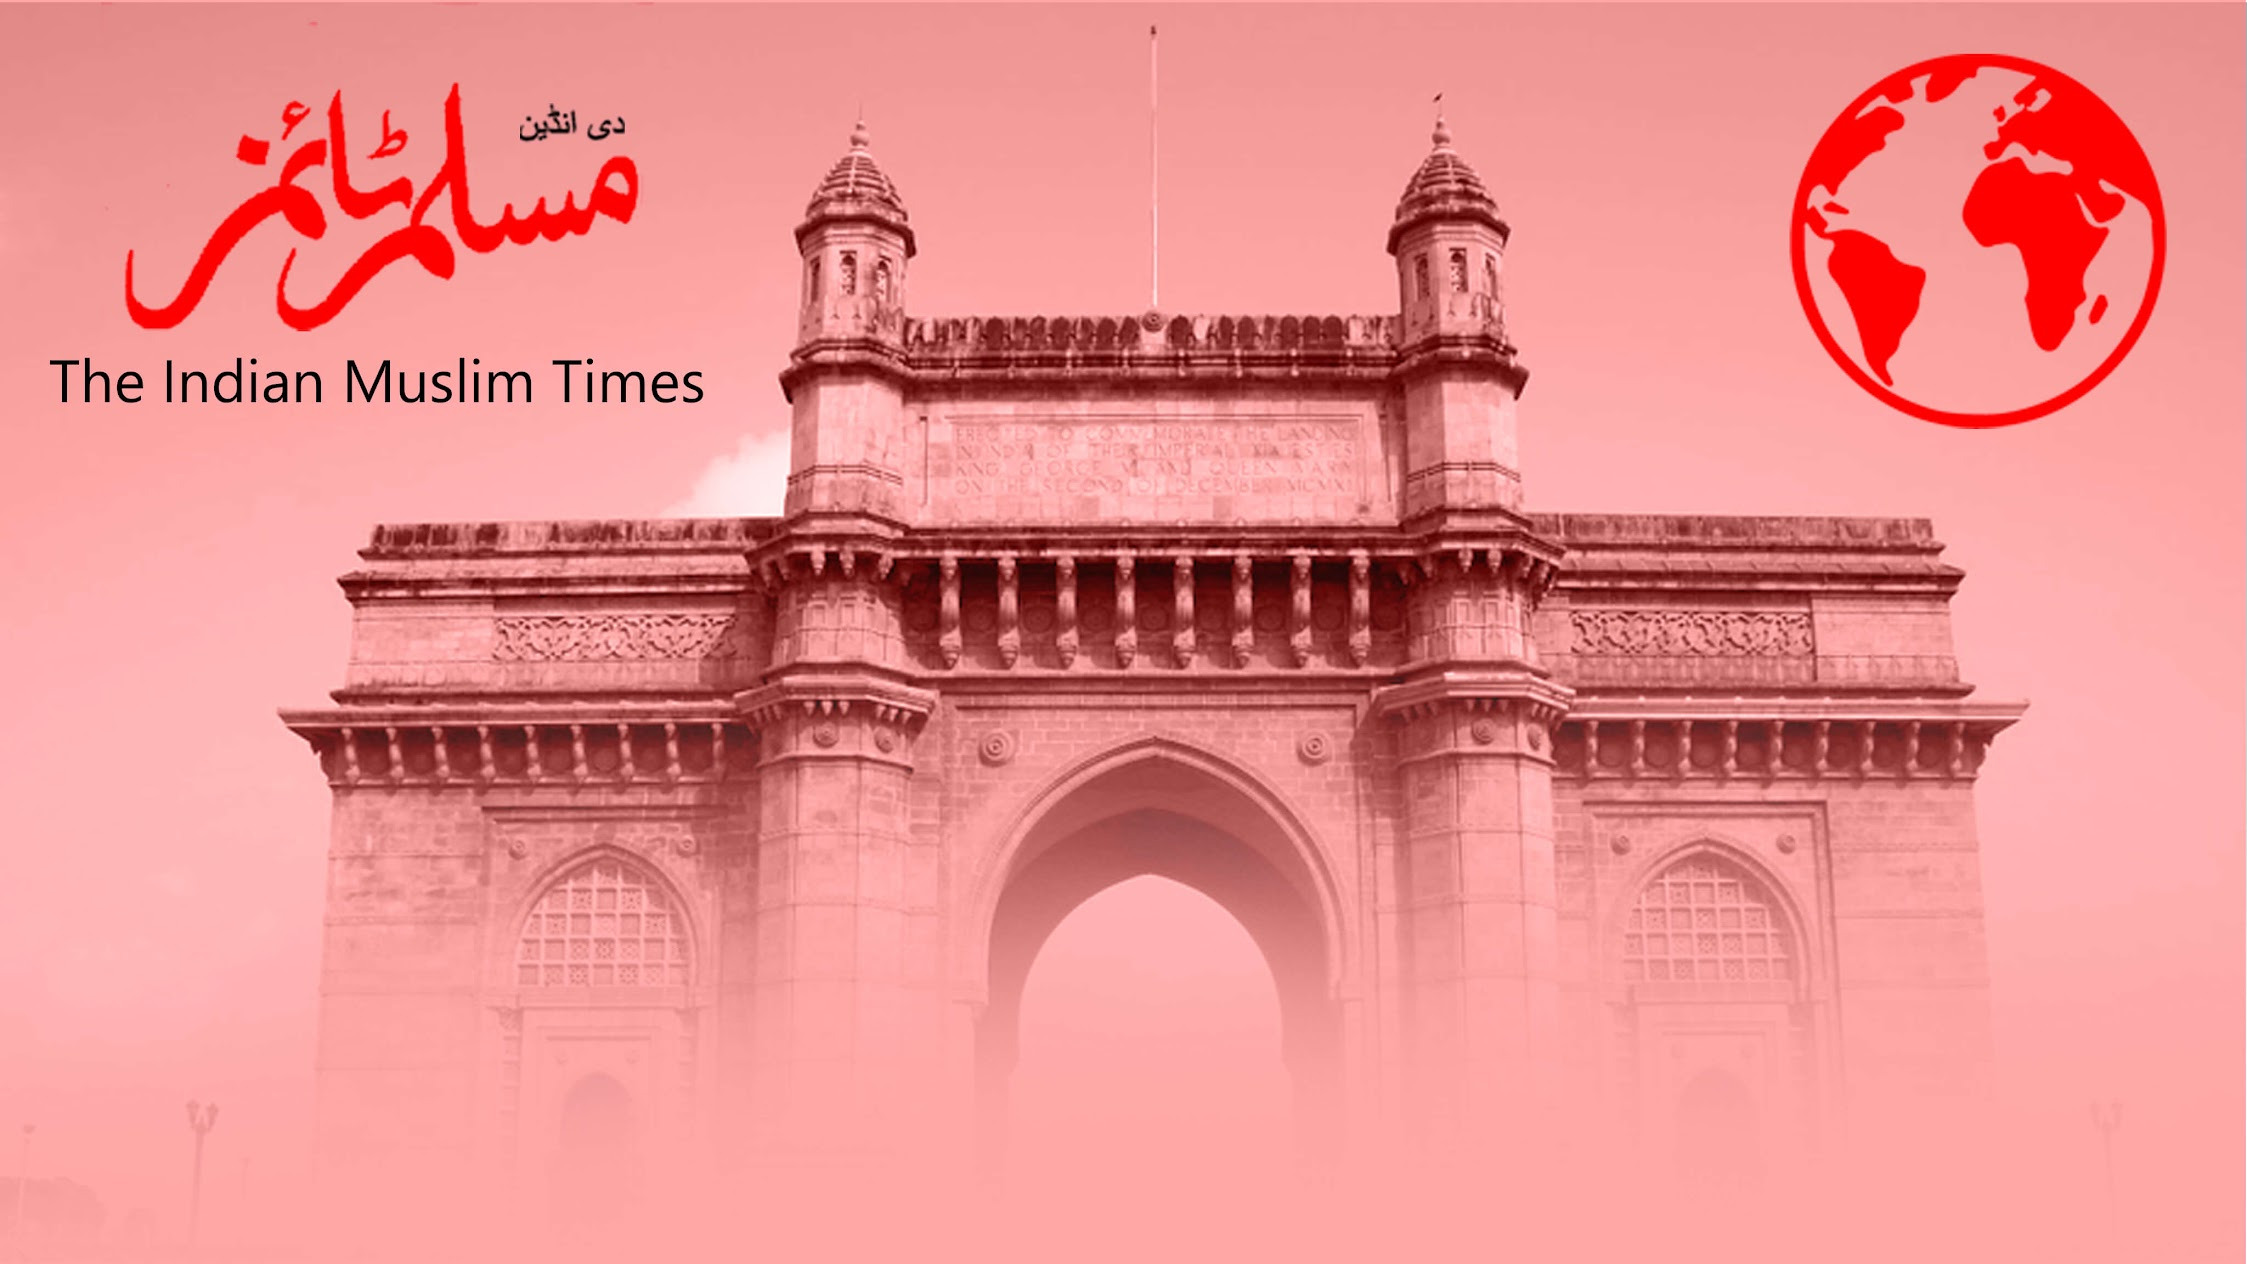 The Indian Muslim Times